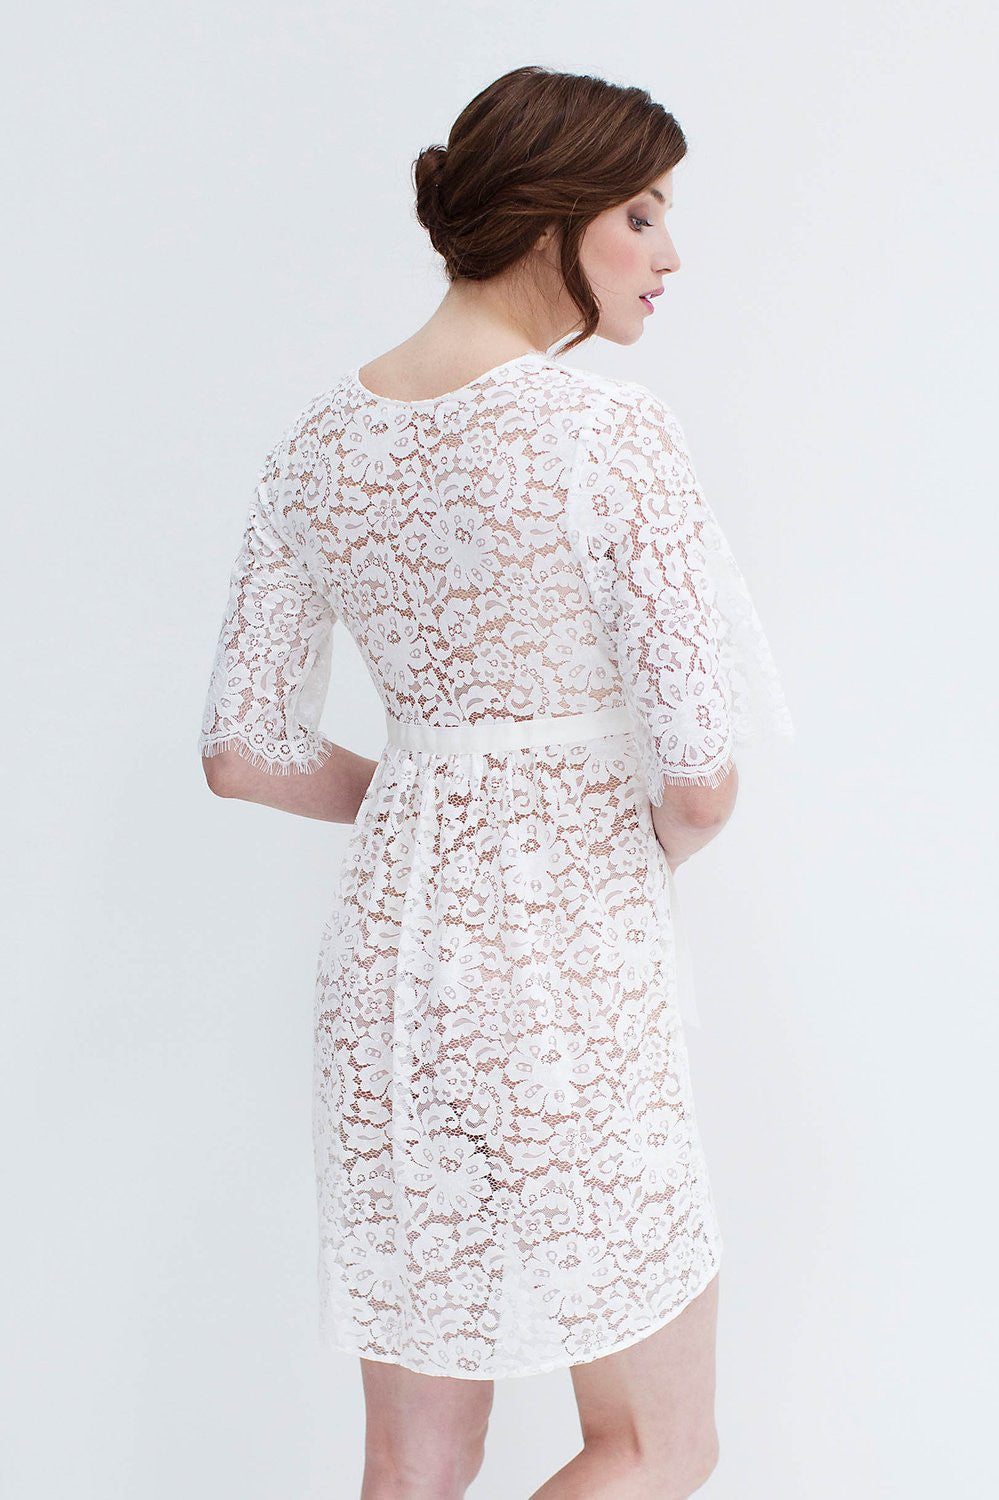 ELIZABETH LACE ROBE IN OFF-WHITE - STYLE 120